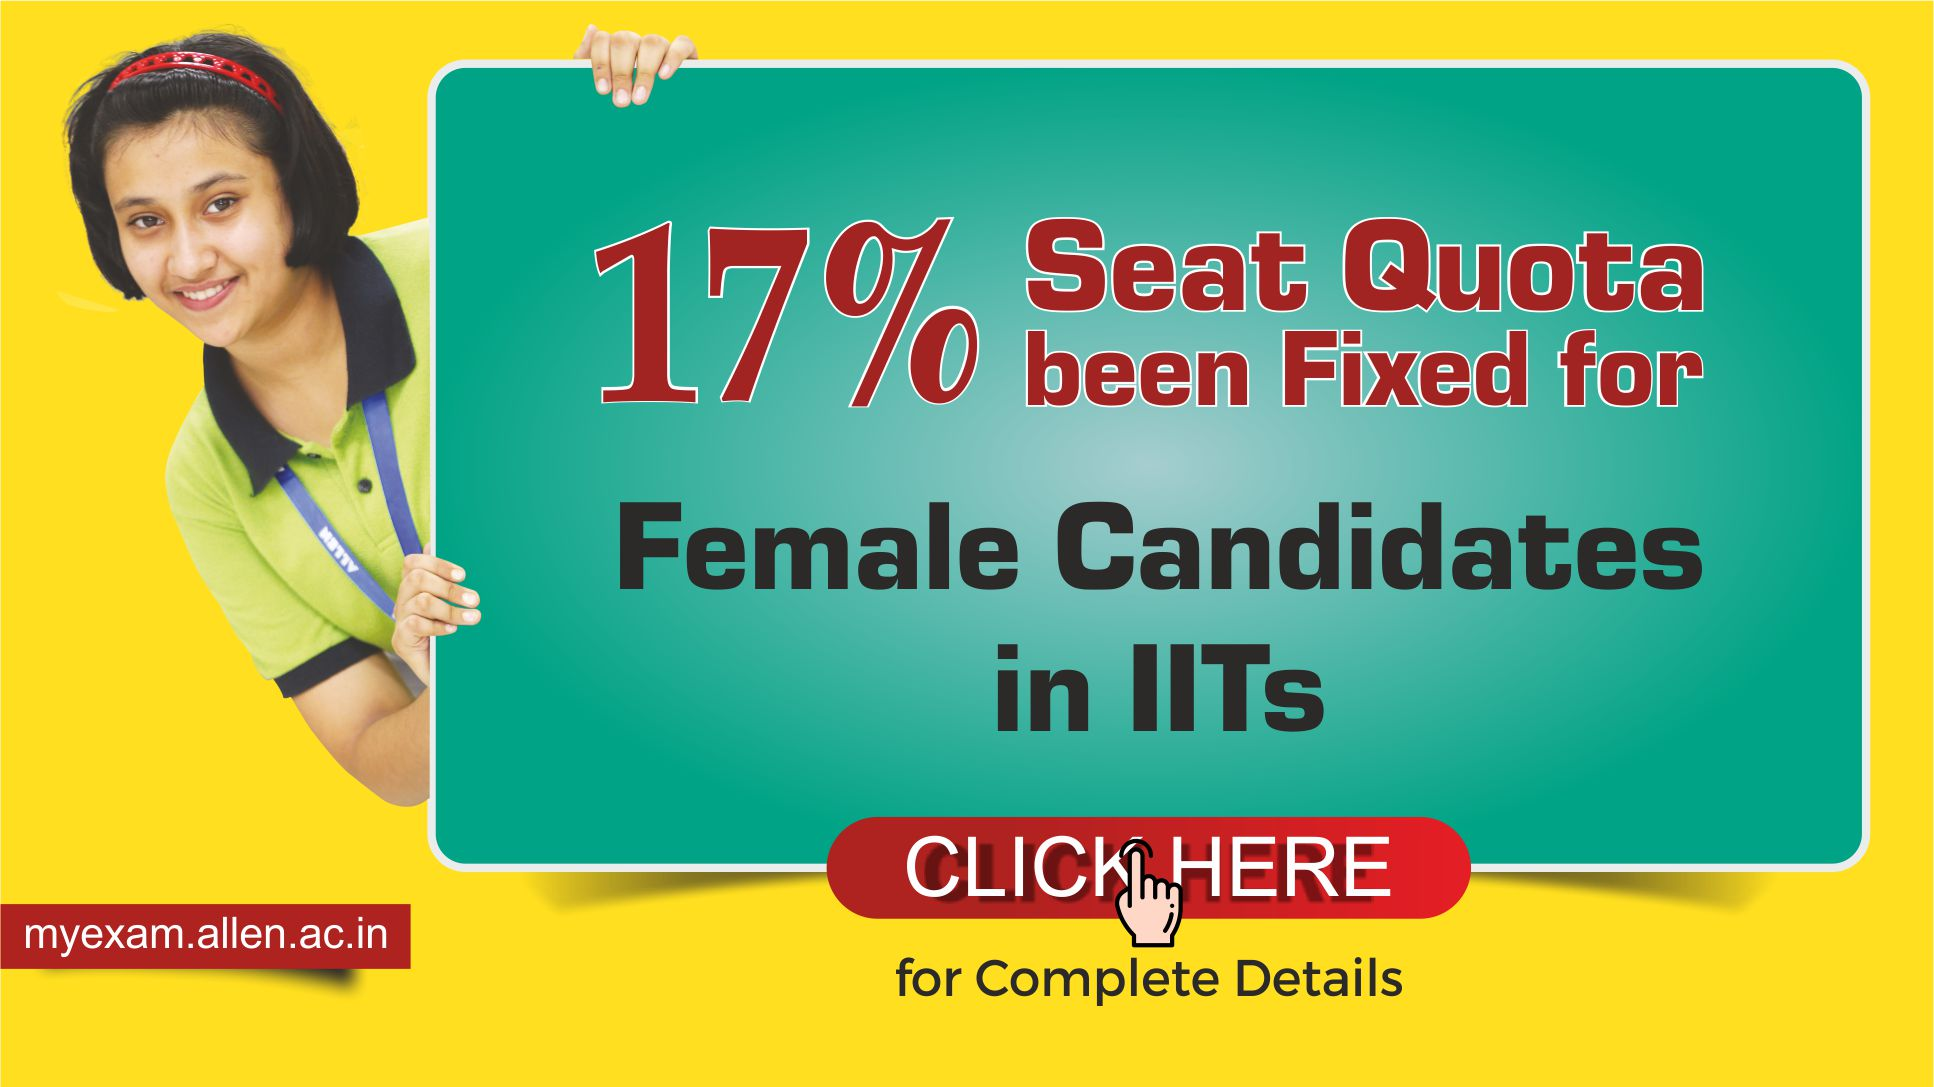 17% Seat Quota been Fixed for Female Candidates in IITs